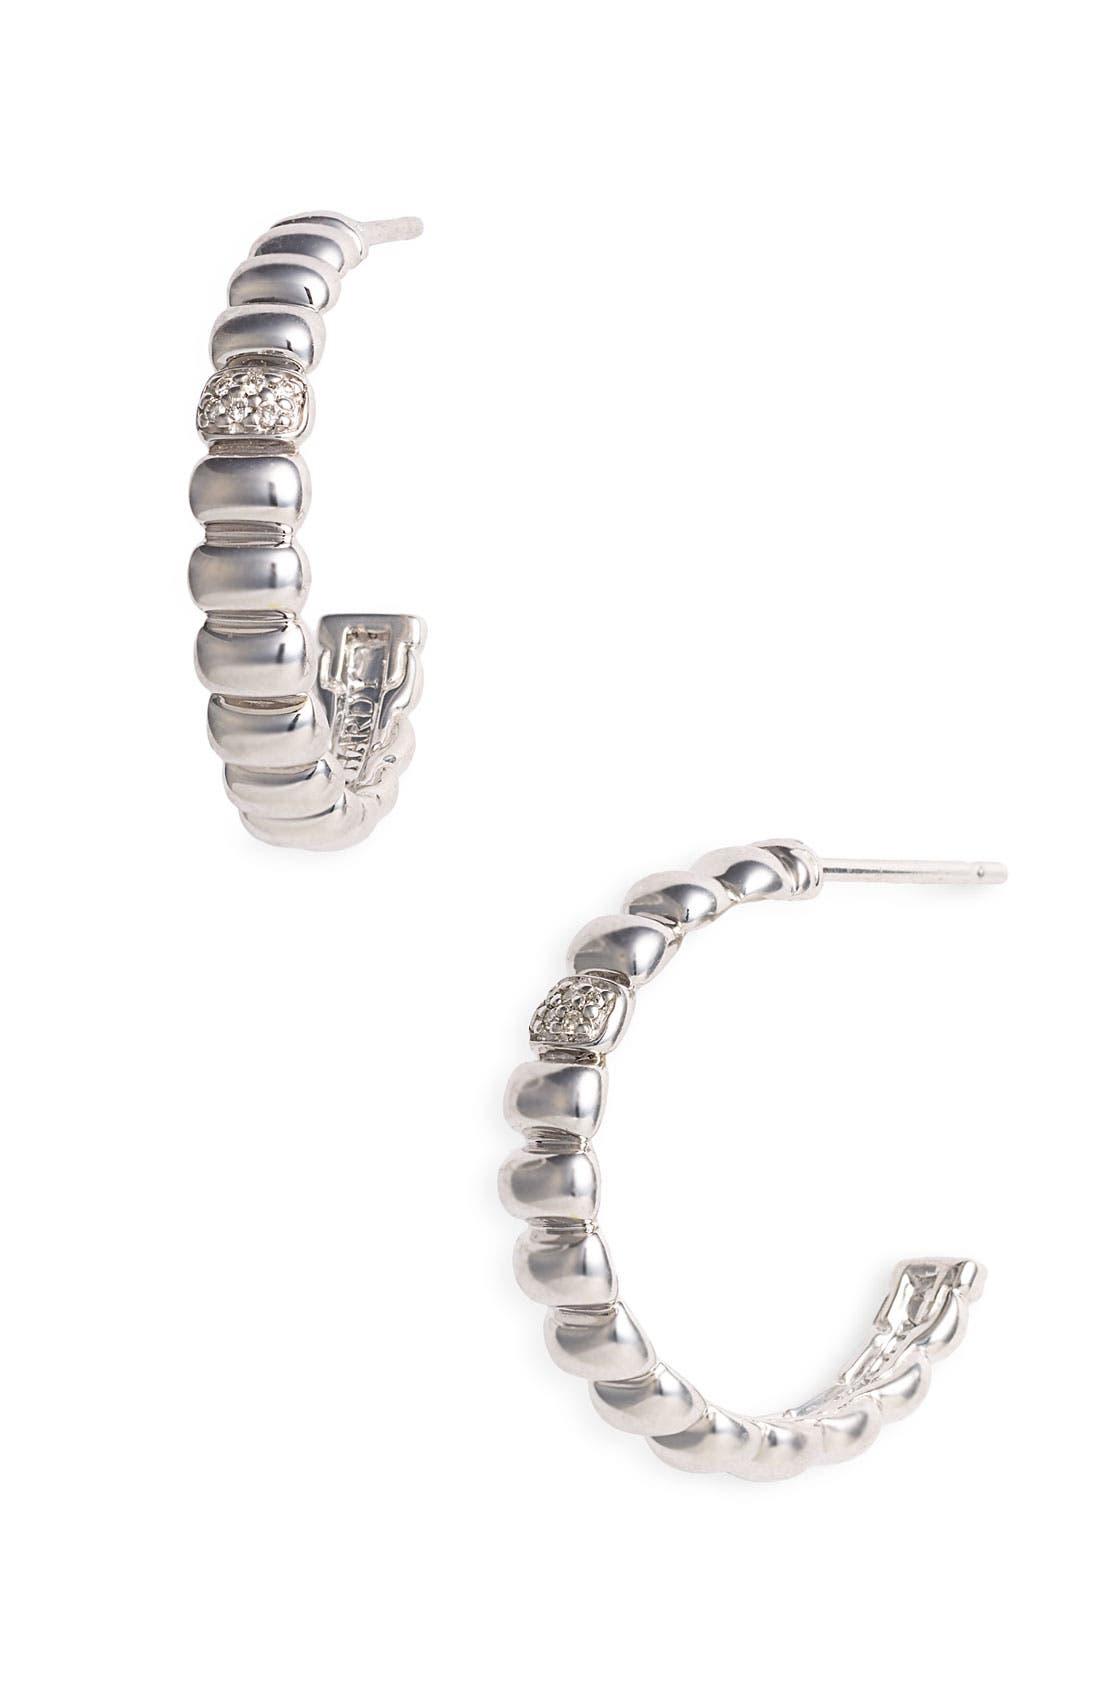 Main Image - John Hardy 'Bedeg' Small Diamond Hoop Earrings